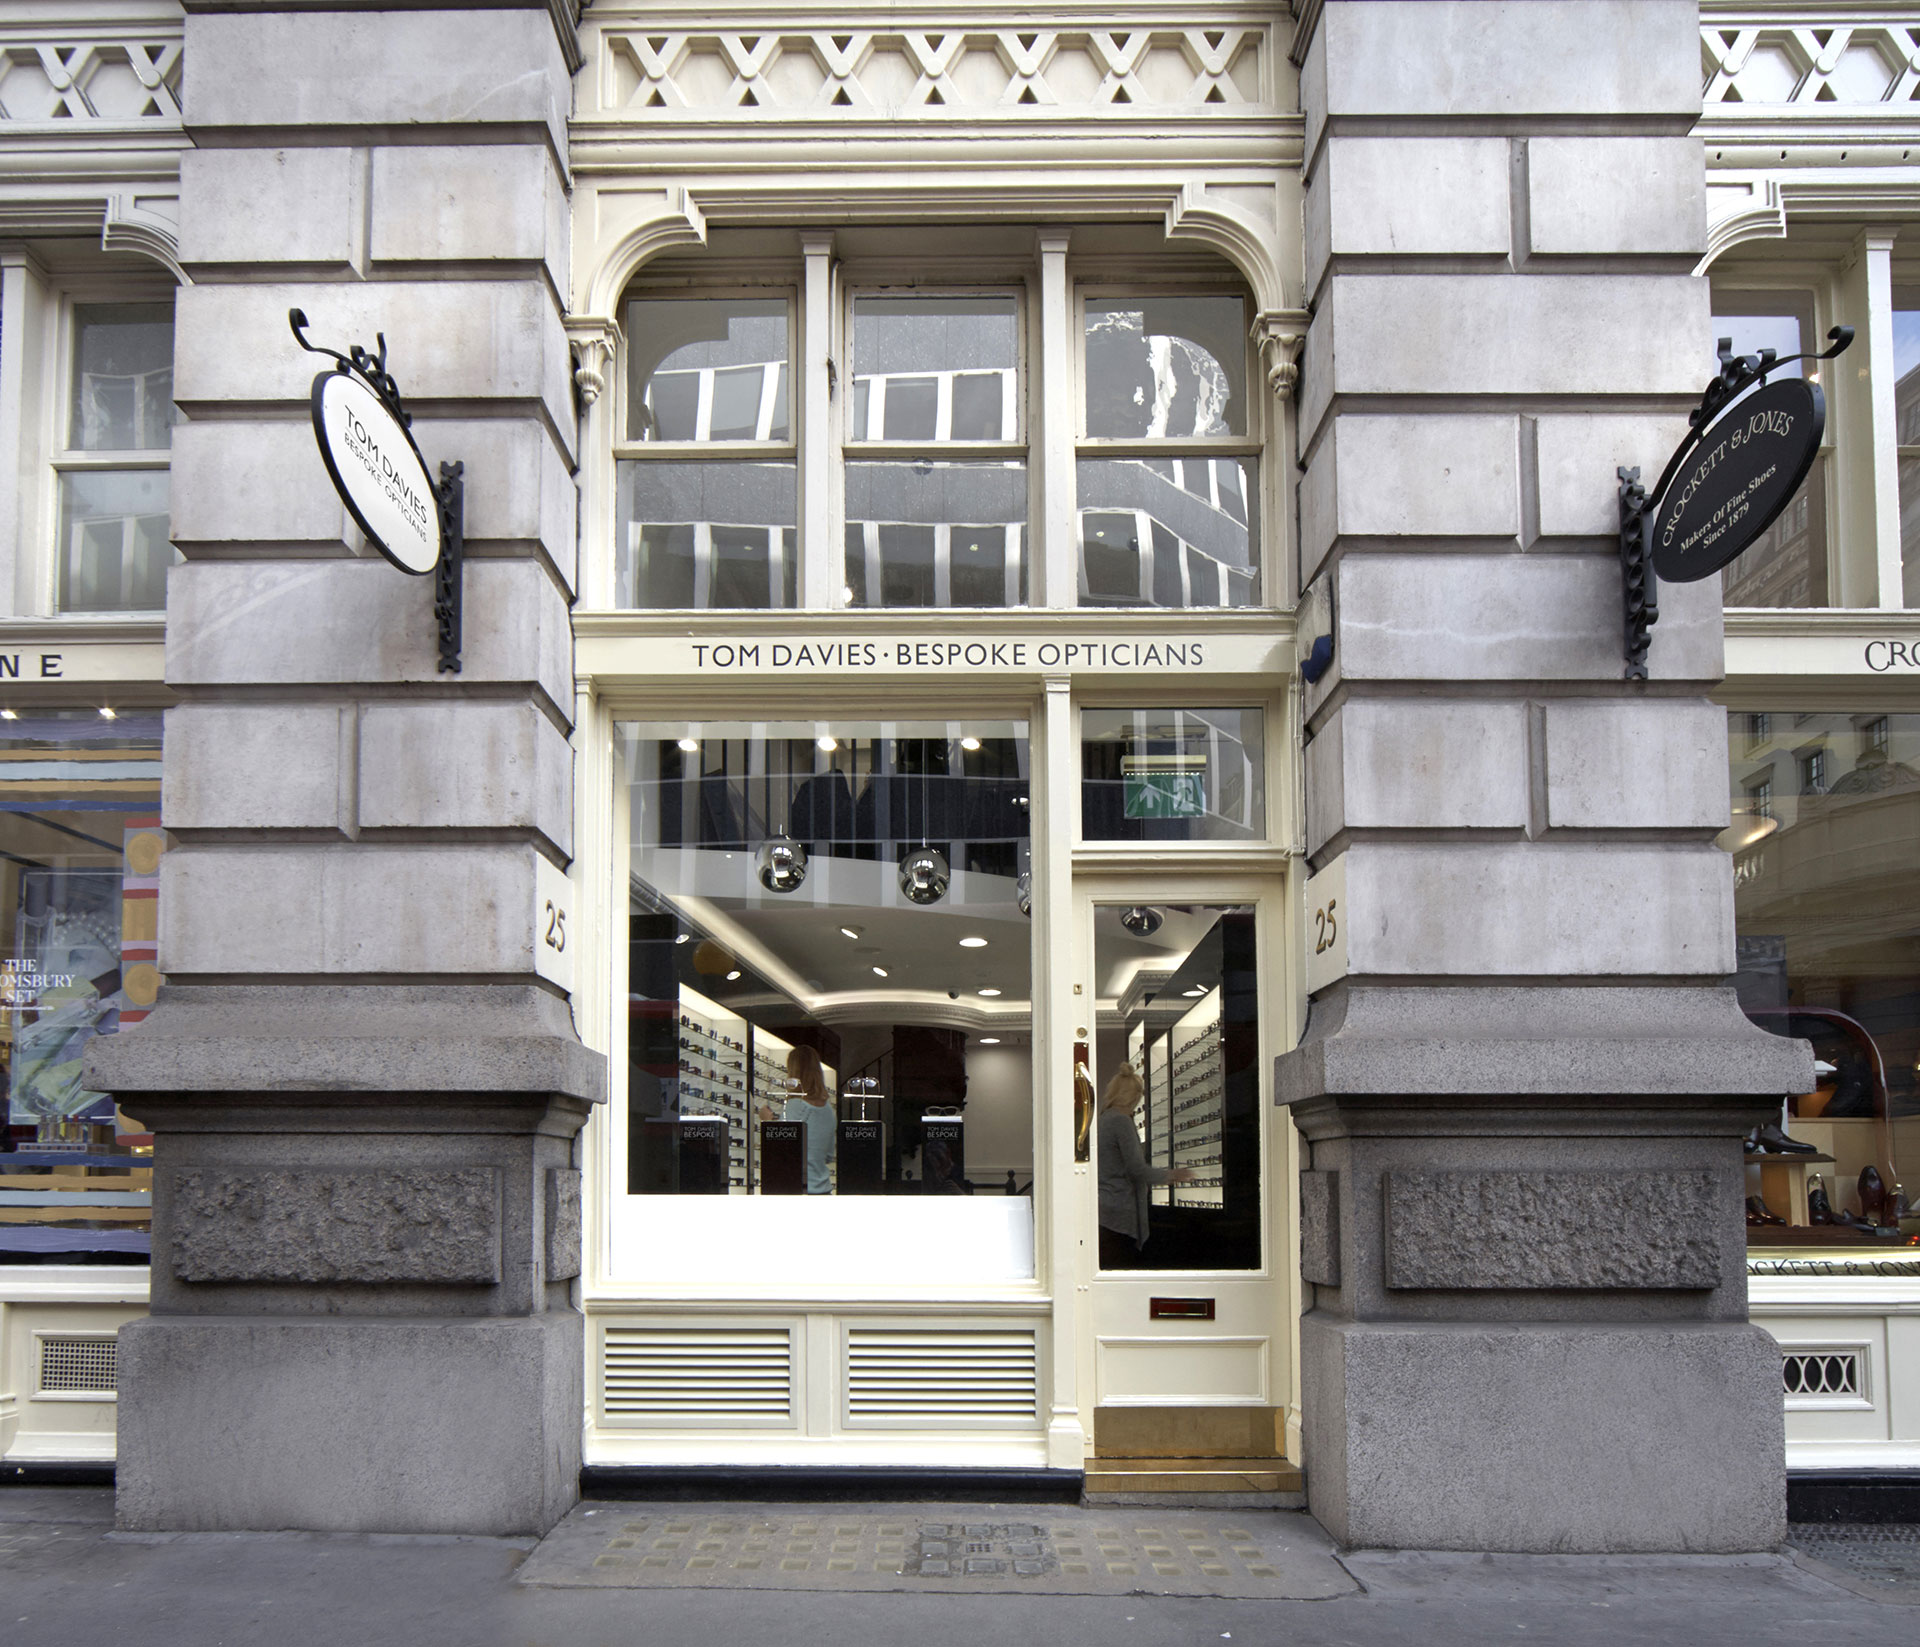 Tom Davies Bespoke Opticians in Royal Exchange